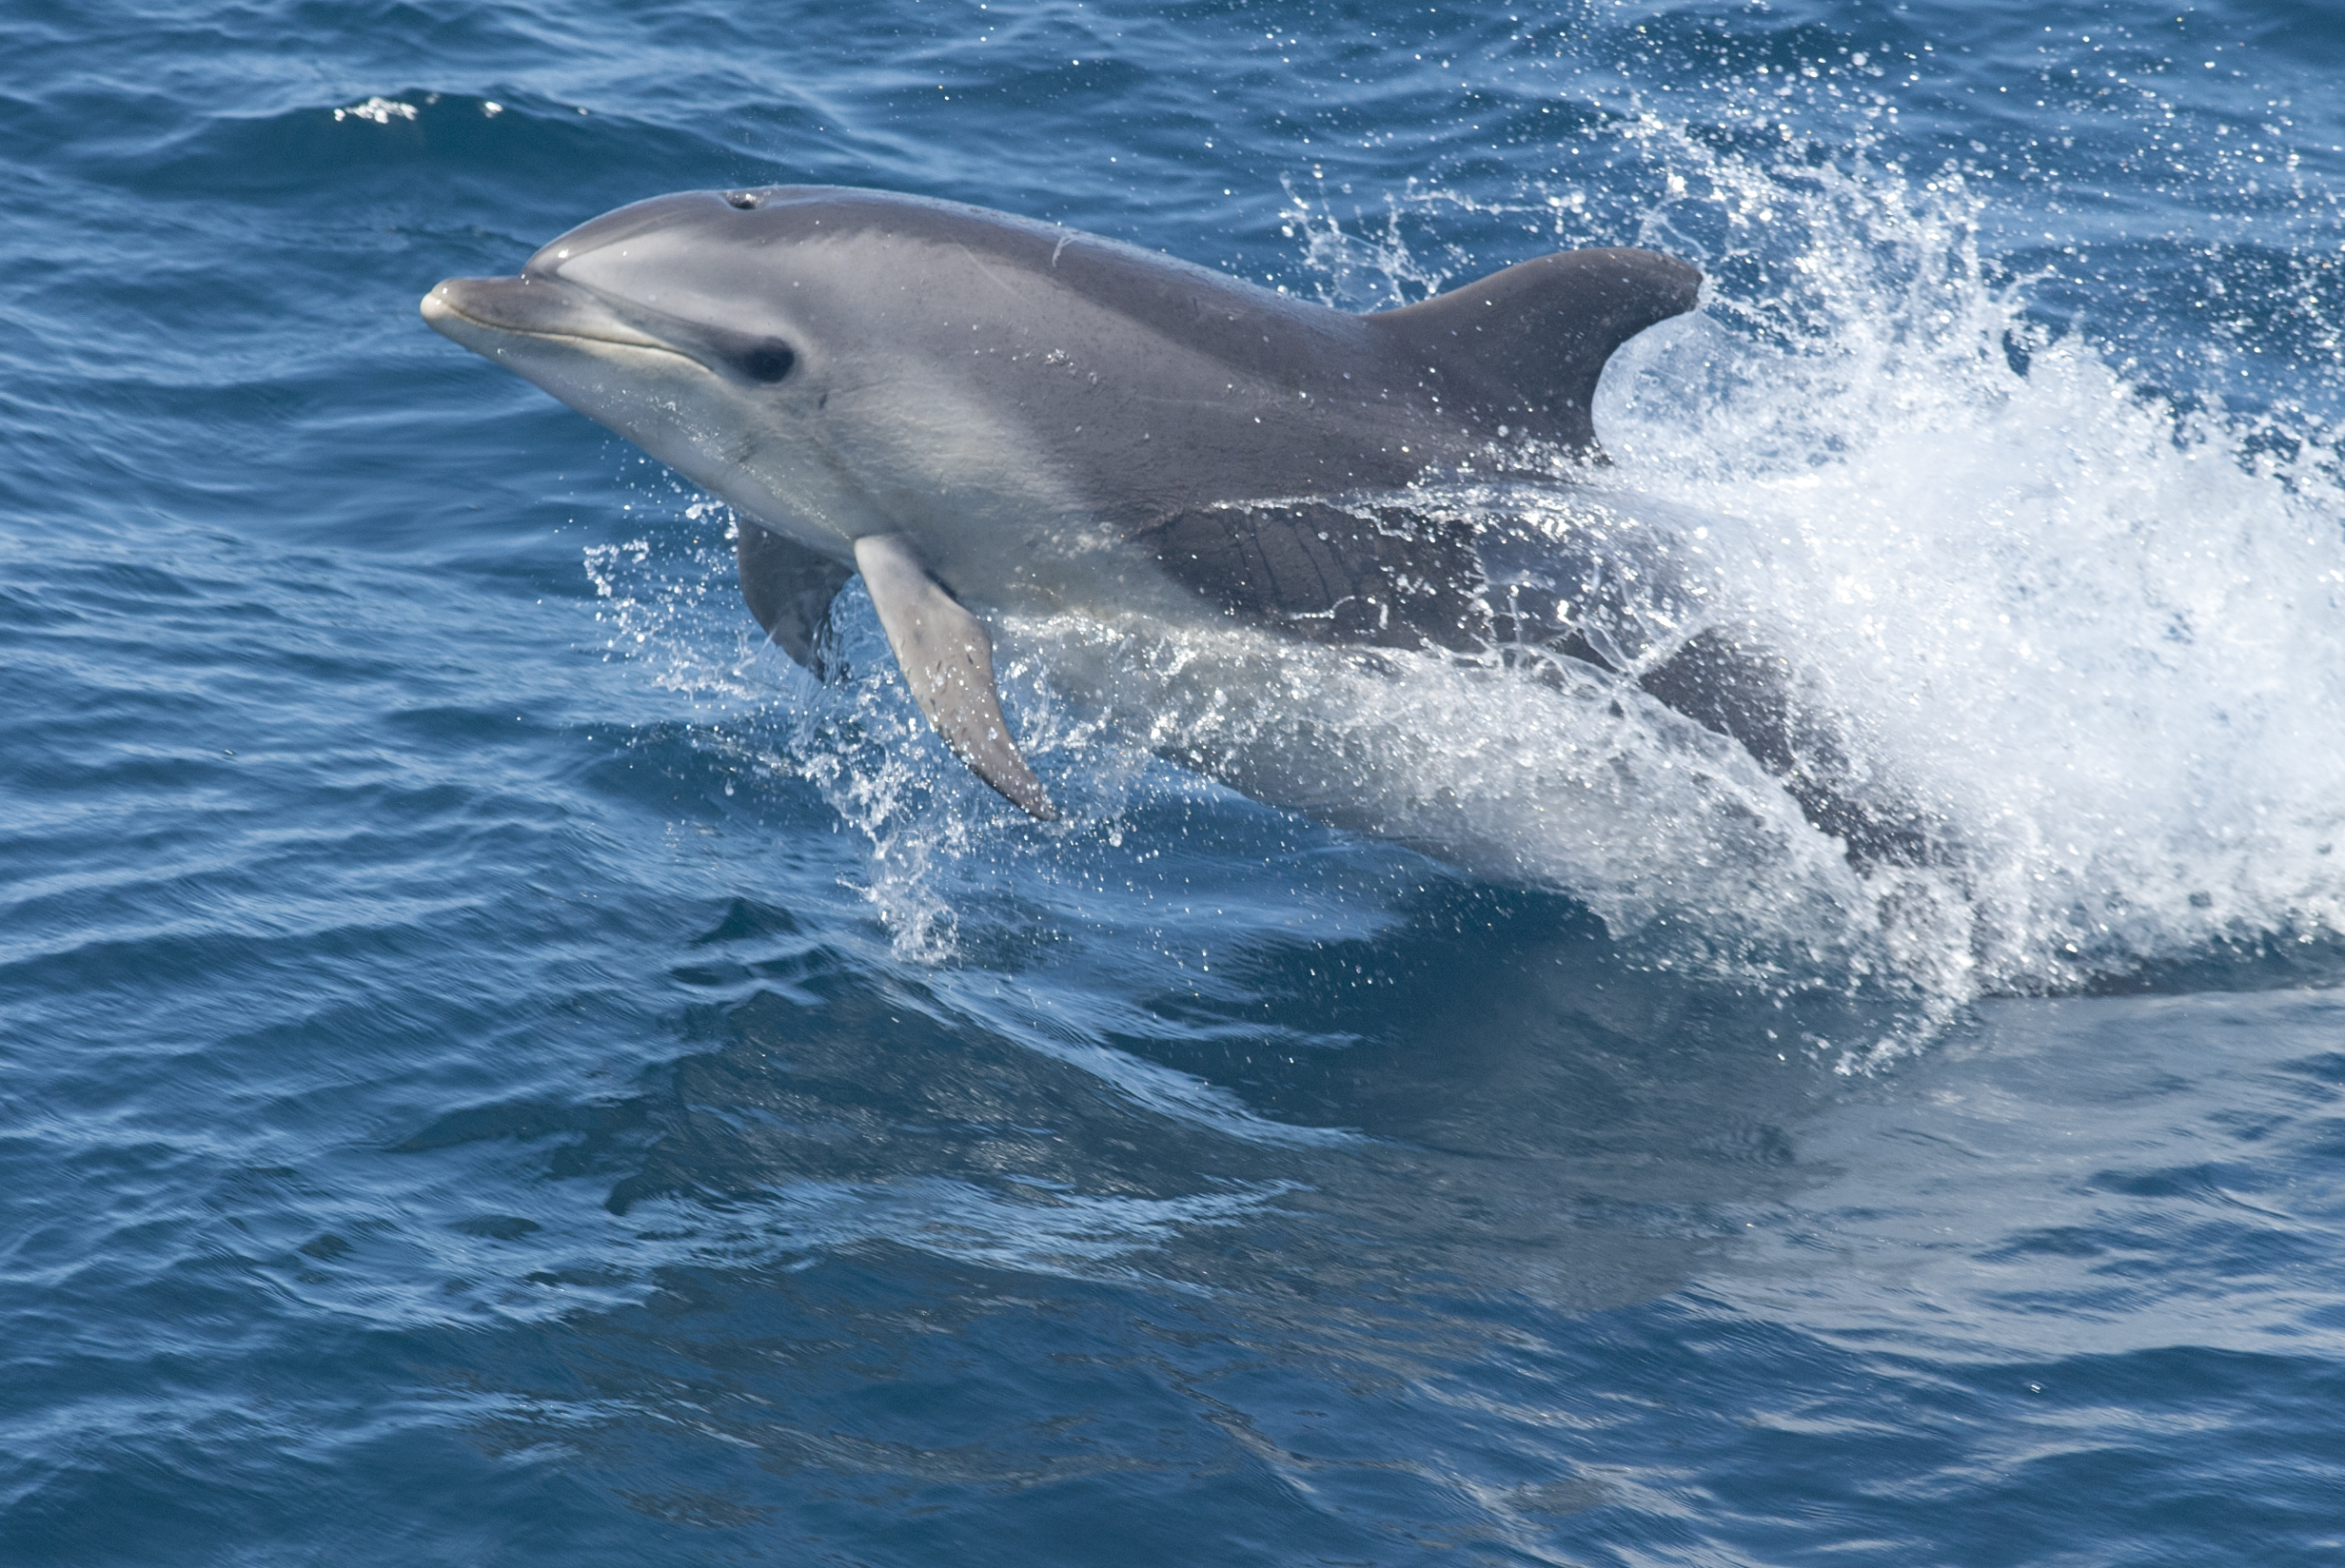 Suzy\'s Animals of the World Blog: THE BOTTLENOSE DOLPHINS